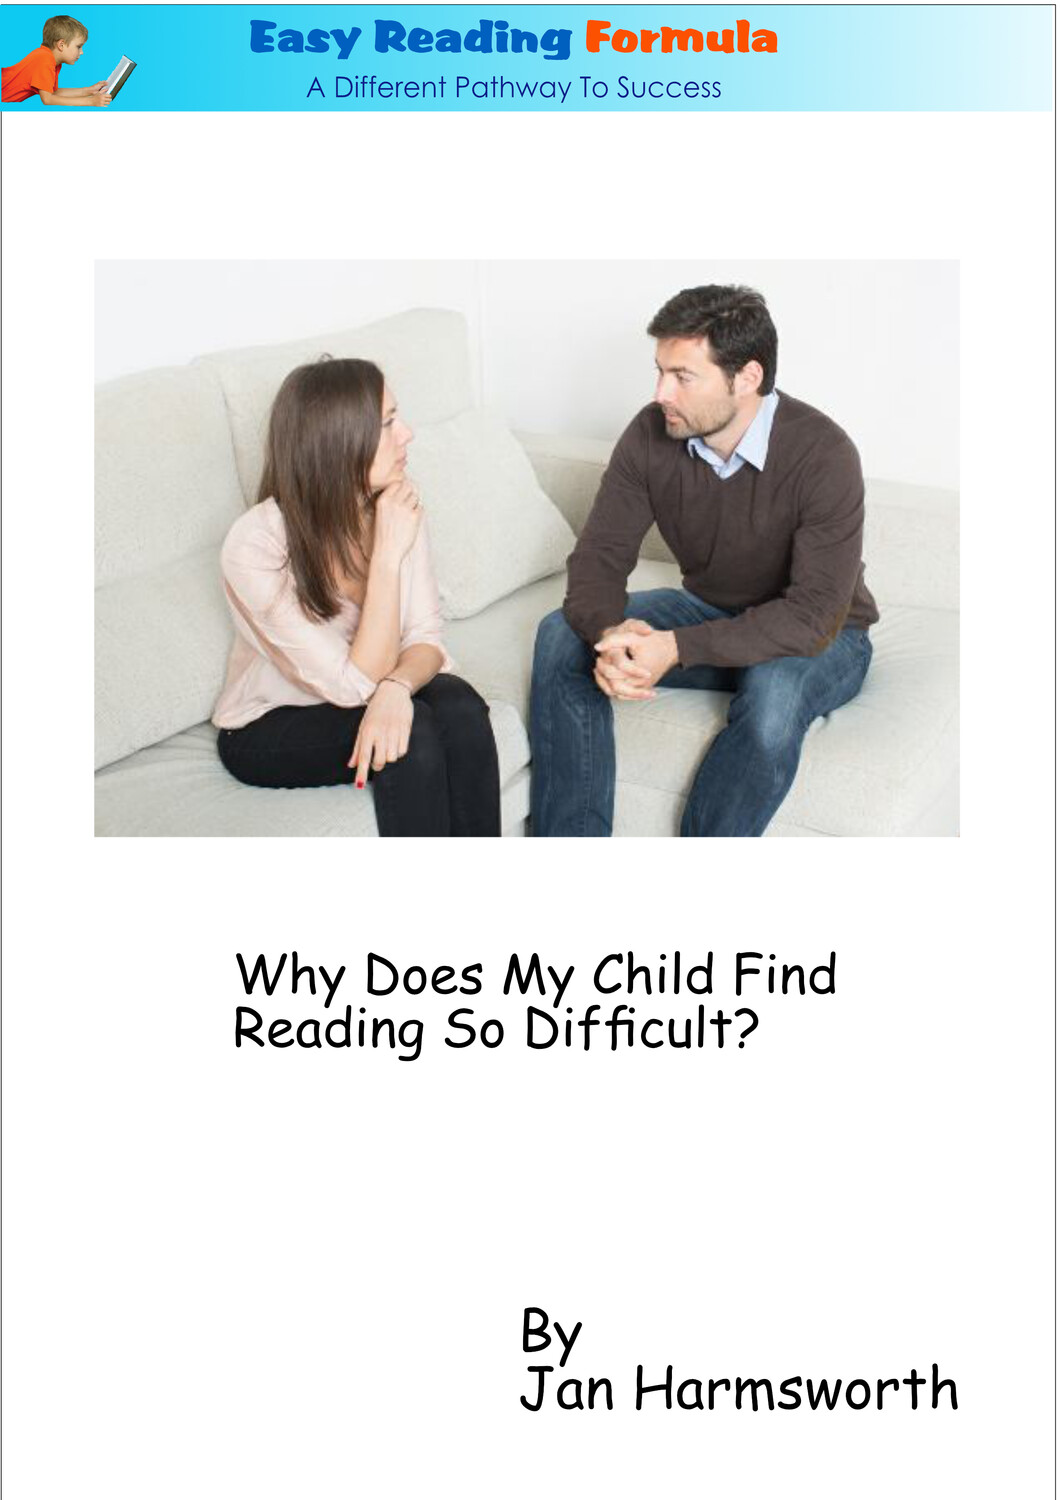 Why Does My Child Find Reading So Difficult